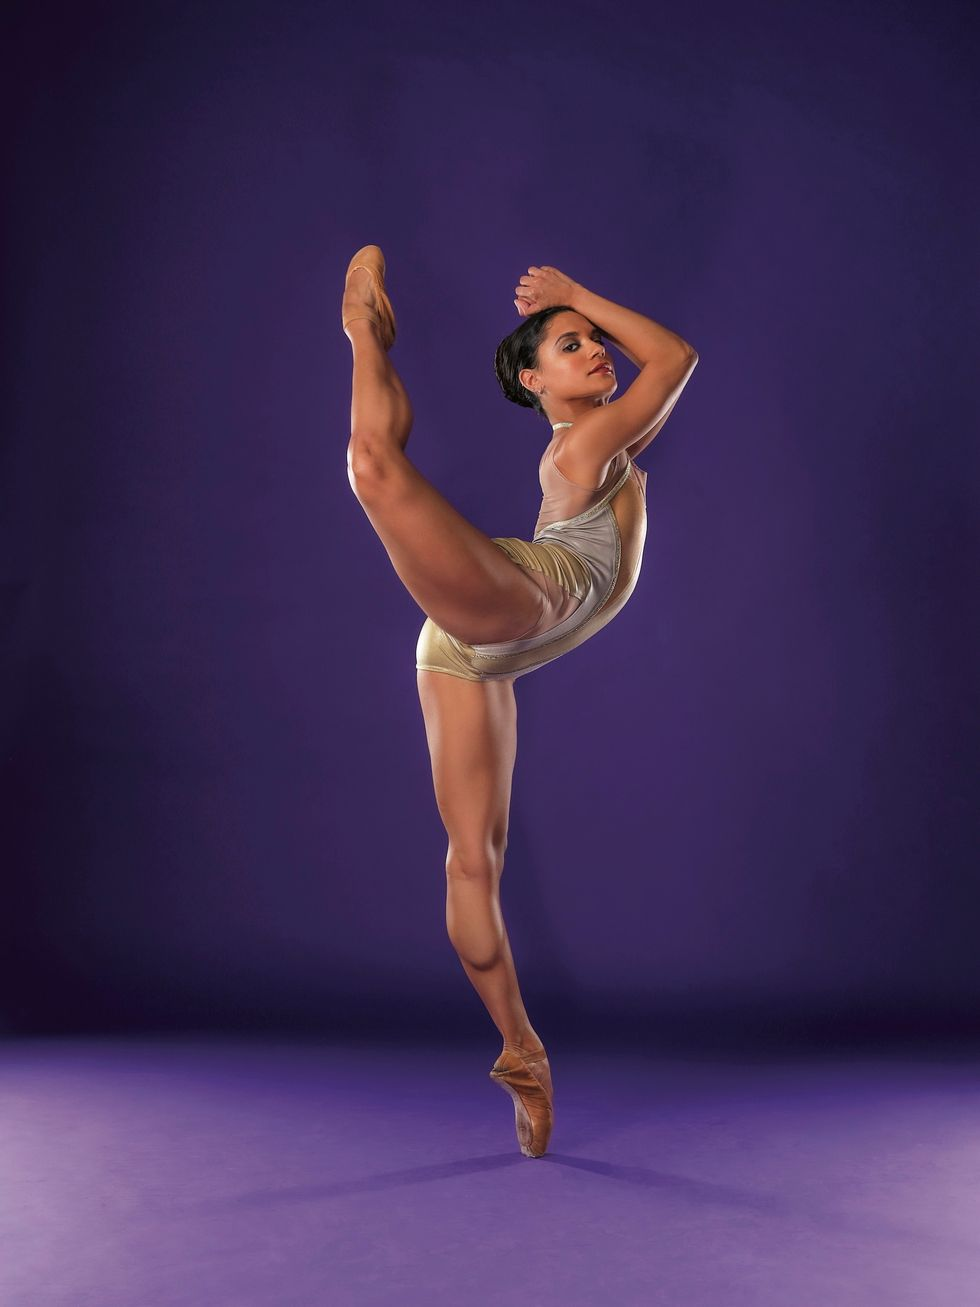 Tatiana Melendez, wearing a shiny gold leotard, stands on her left leg on pointe and kicks her bent right leg head height behnd her.